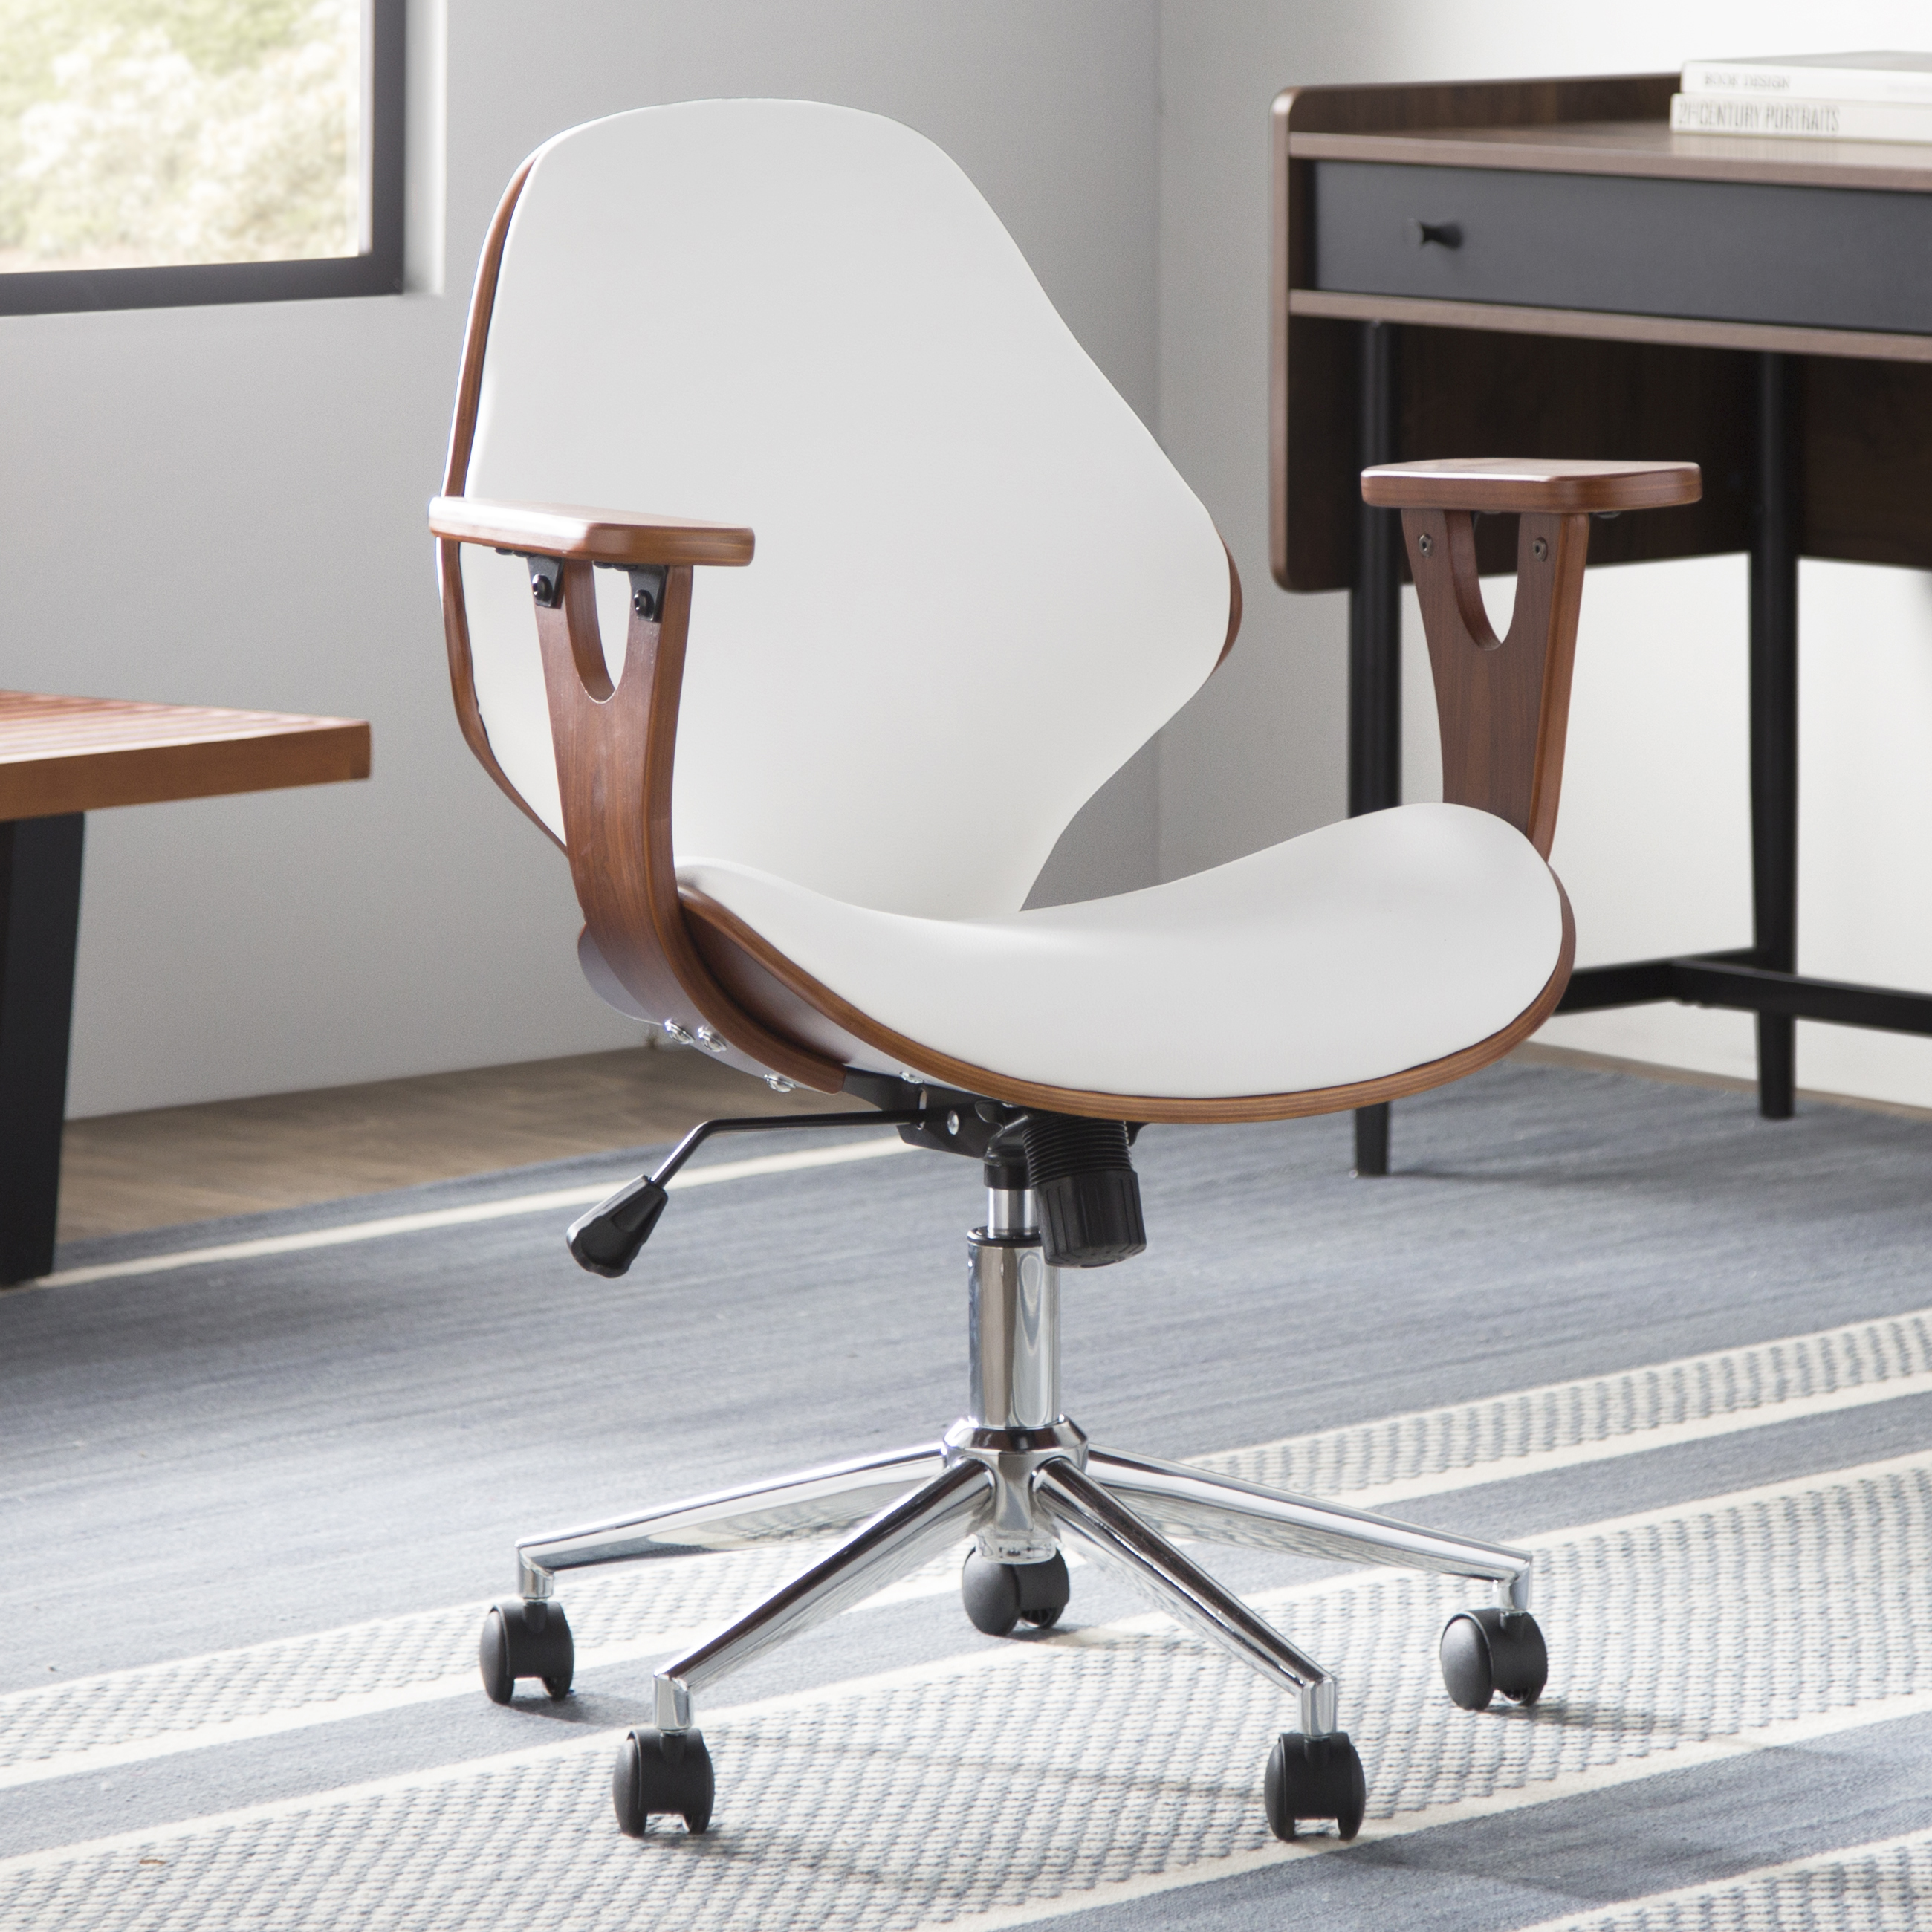 Attirant Desk Chairs